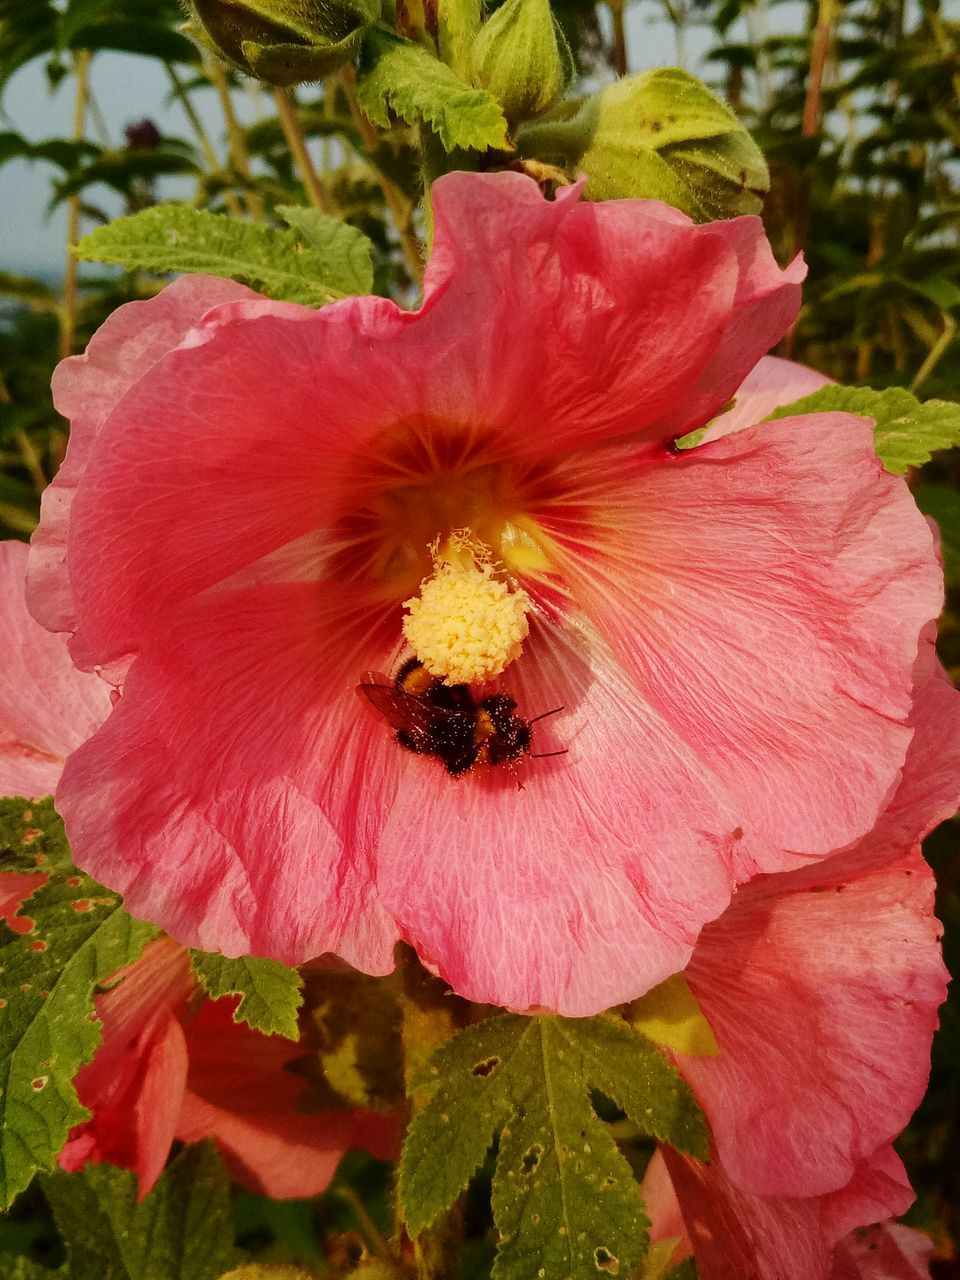 flower, petal, fragility, flower head, insect, animal themes, nature, pollen, beauty in nature, one animal, animals in the wild, growth, freshness, outdoors, day, plant, no people, animal wildlife, pink color, bee, hibiscus, close-up, blooming, stamen, red, pollination